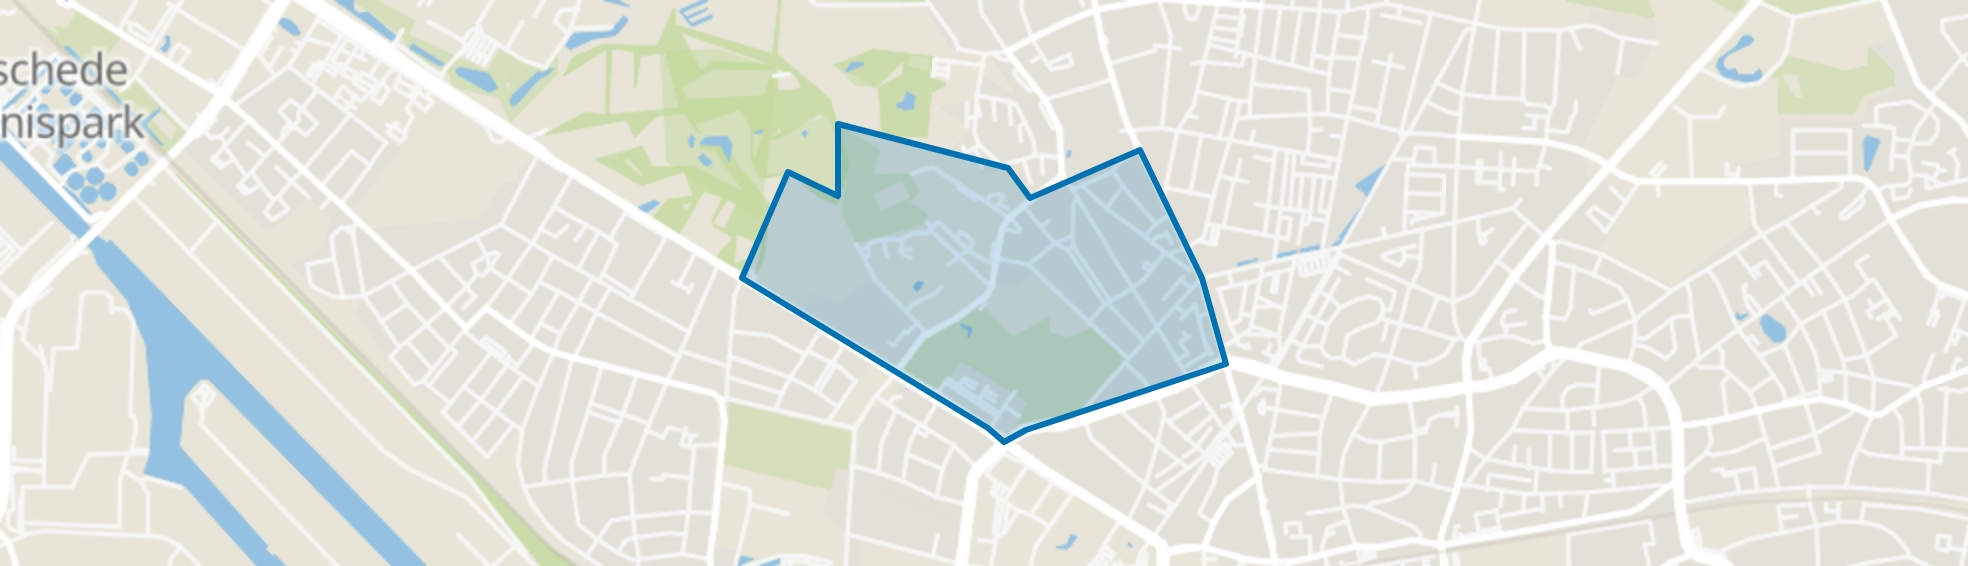 Walhof-Roessingh, Enschede map